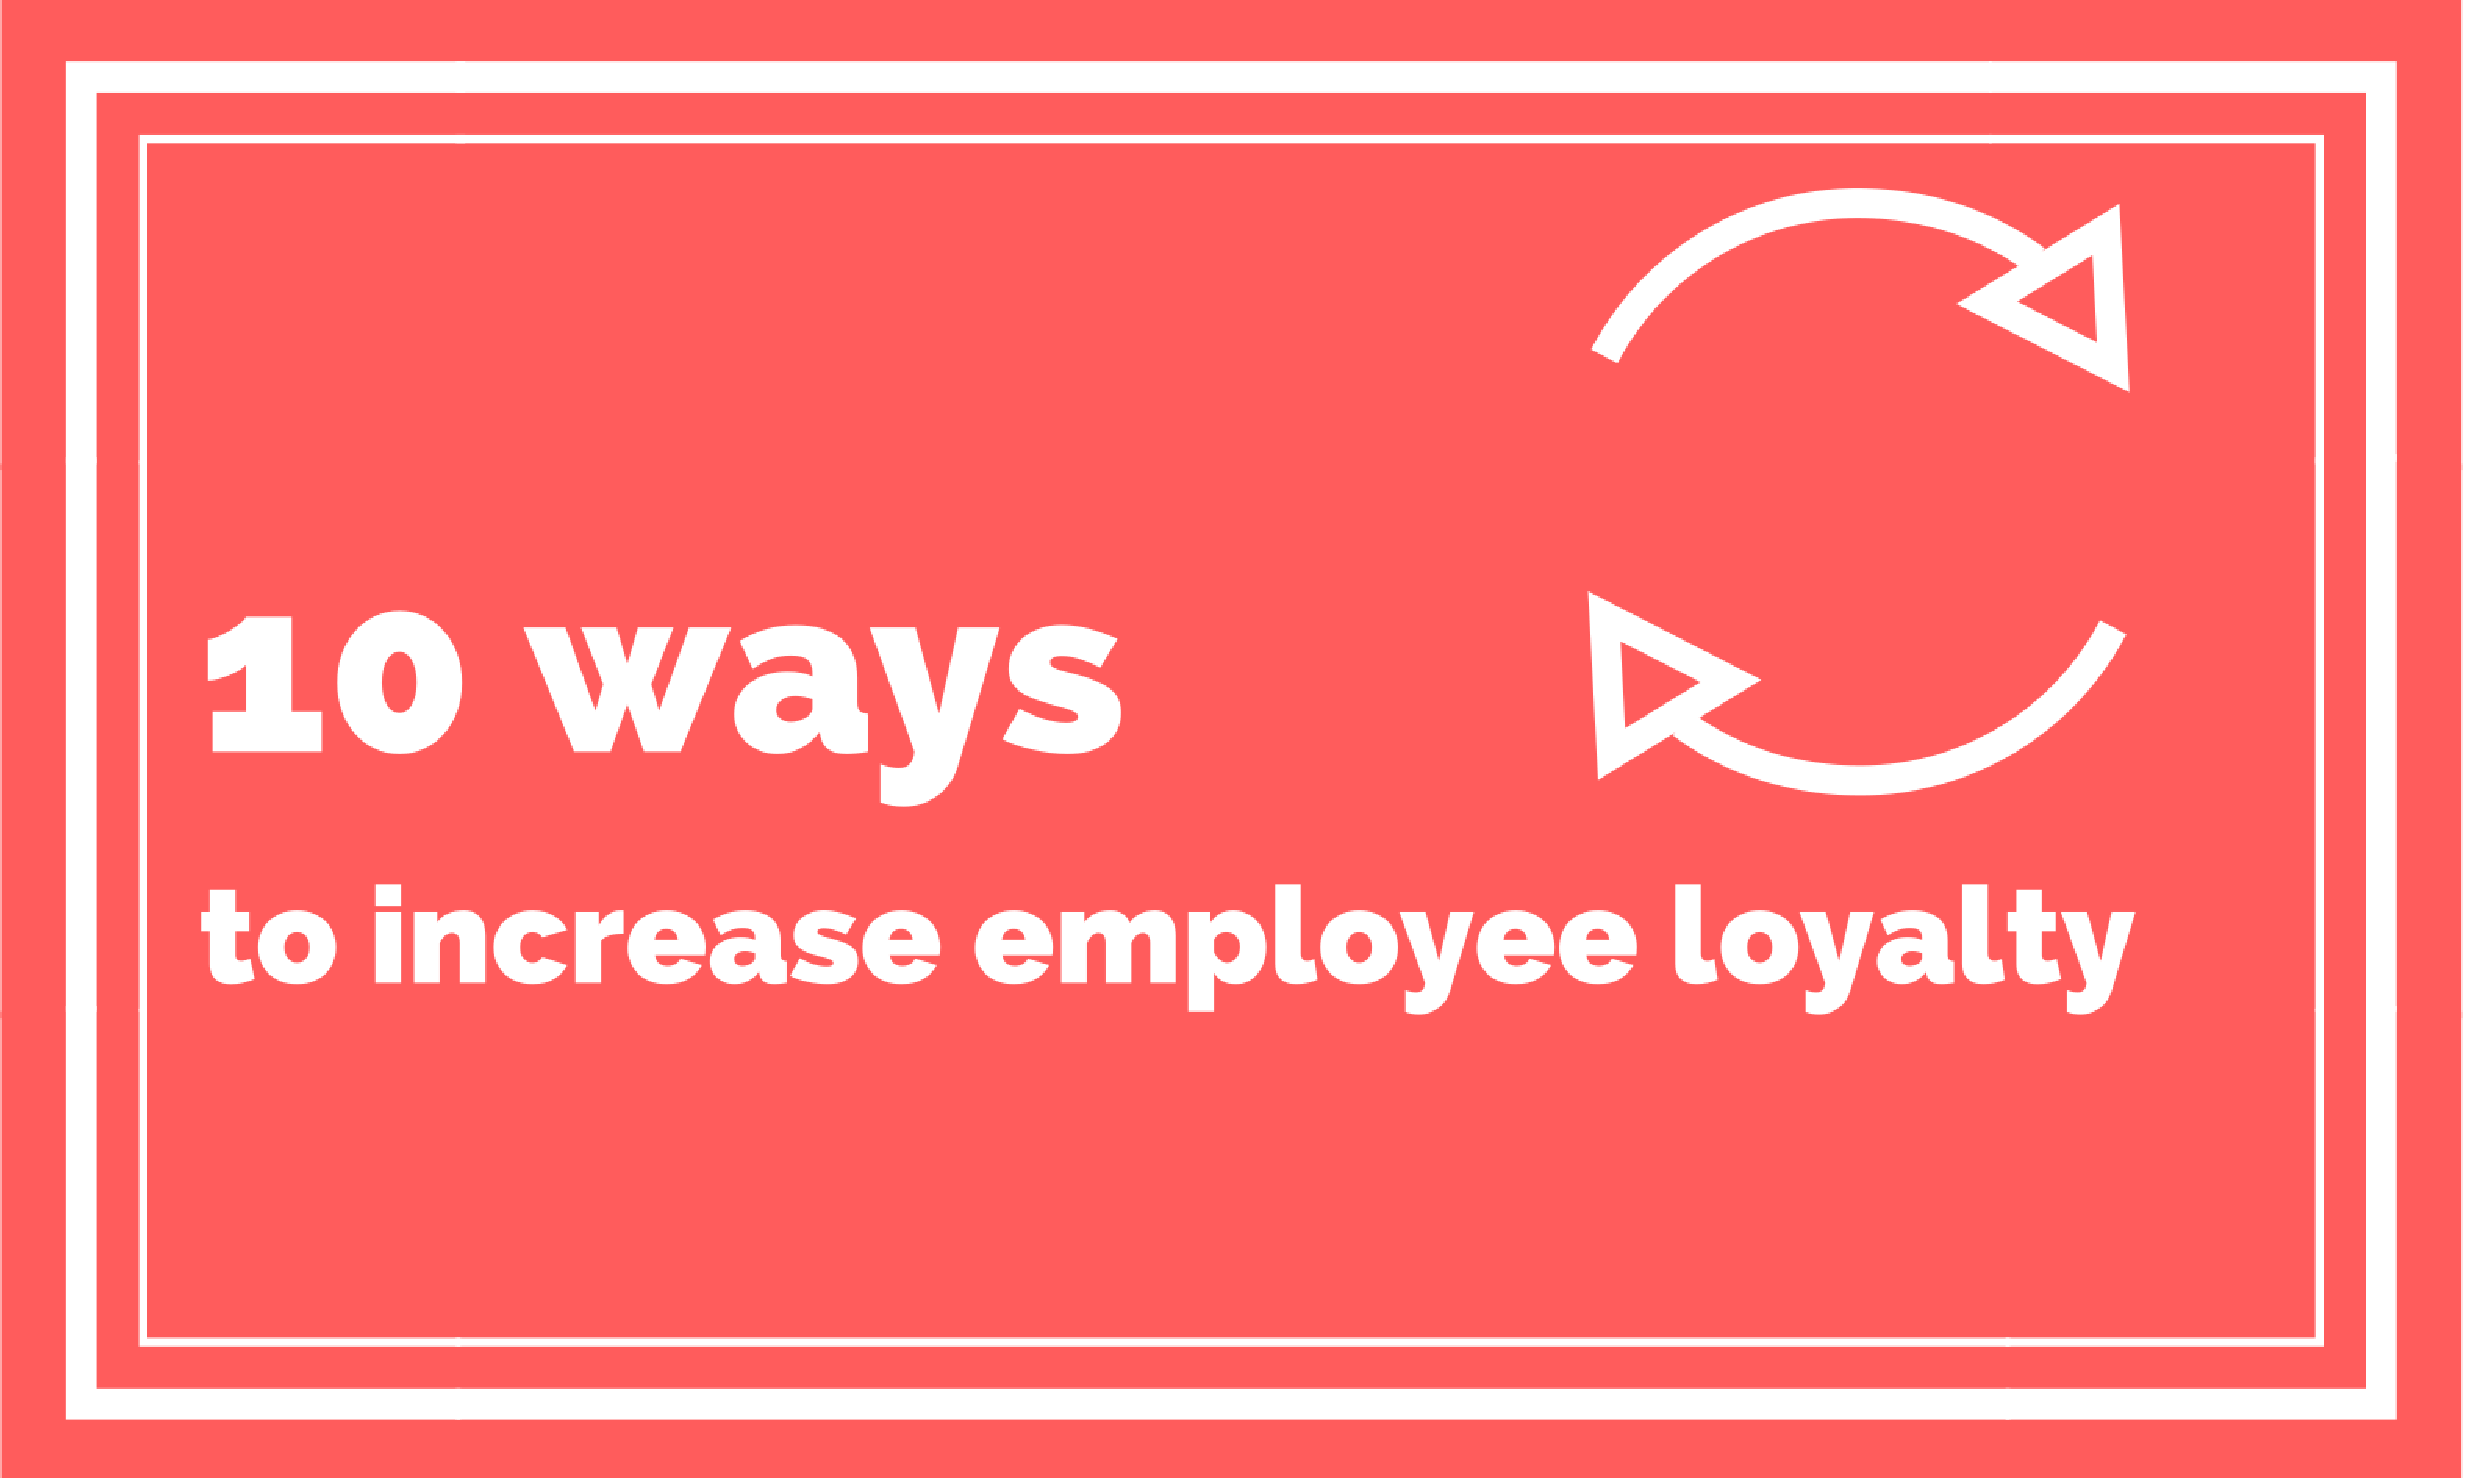 10 Ways to Increase Employee Loyalty